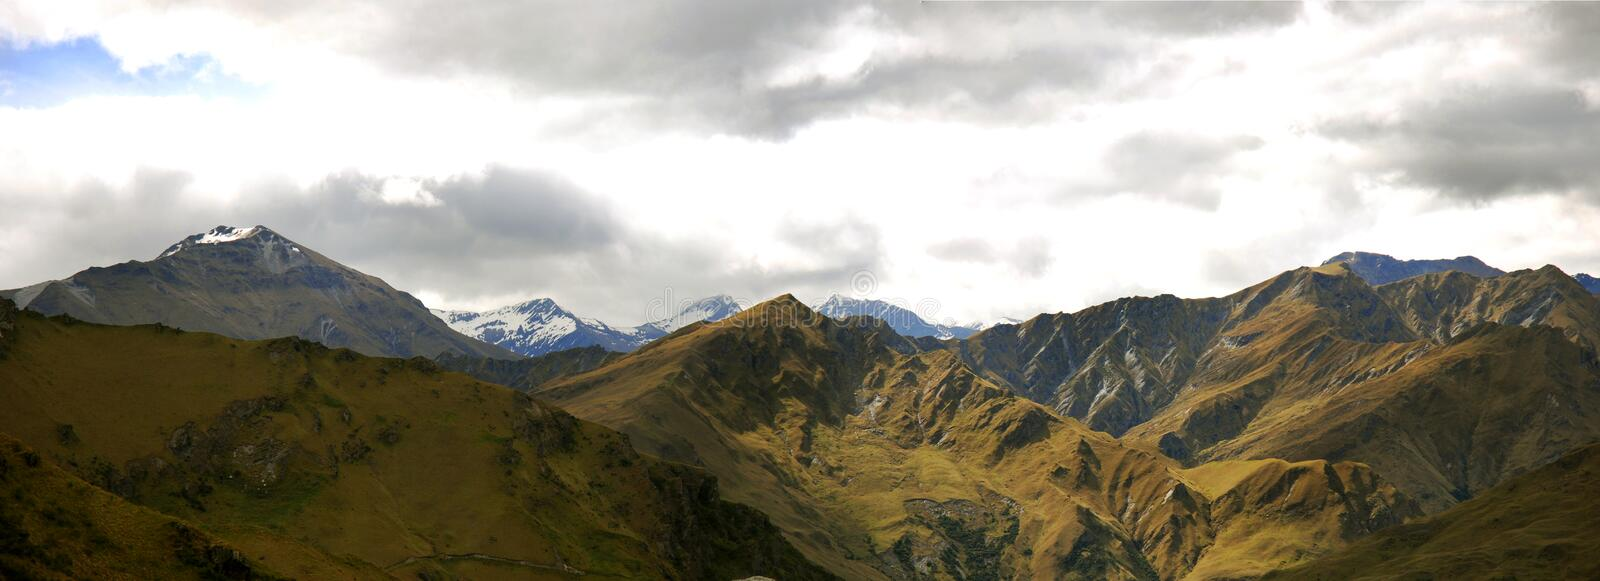 Download Mountain range panorama stock image. Image of space, landscape - 3113947